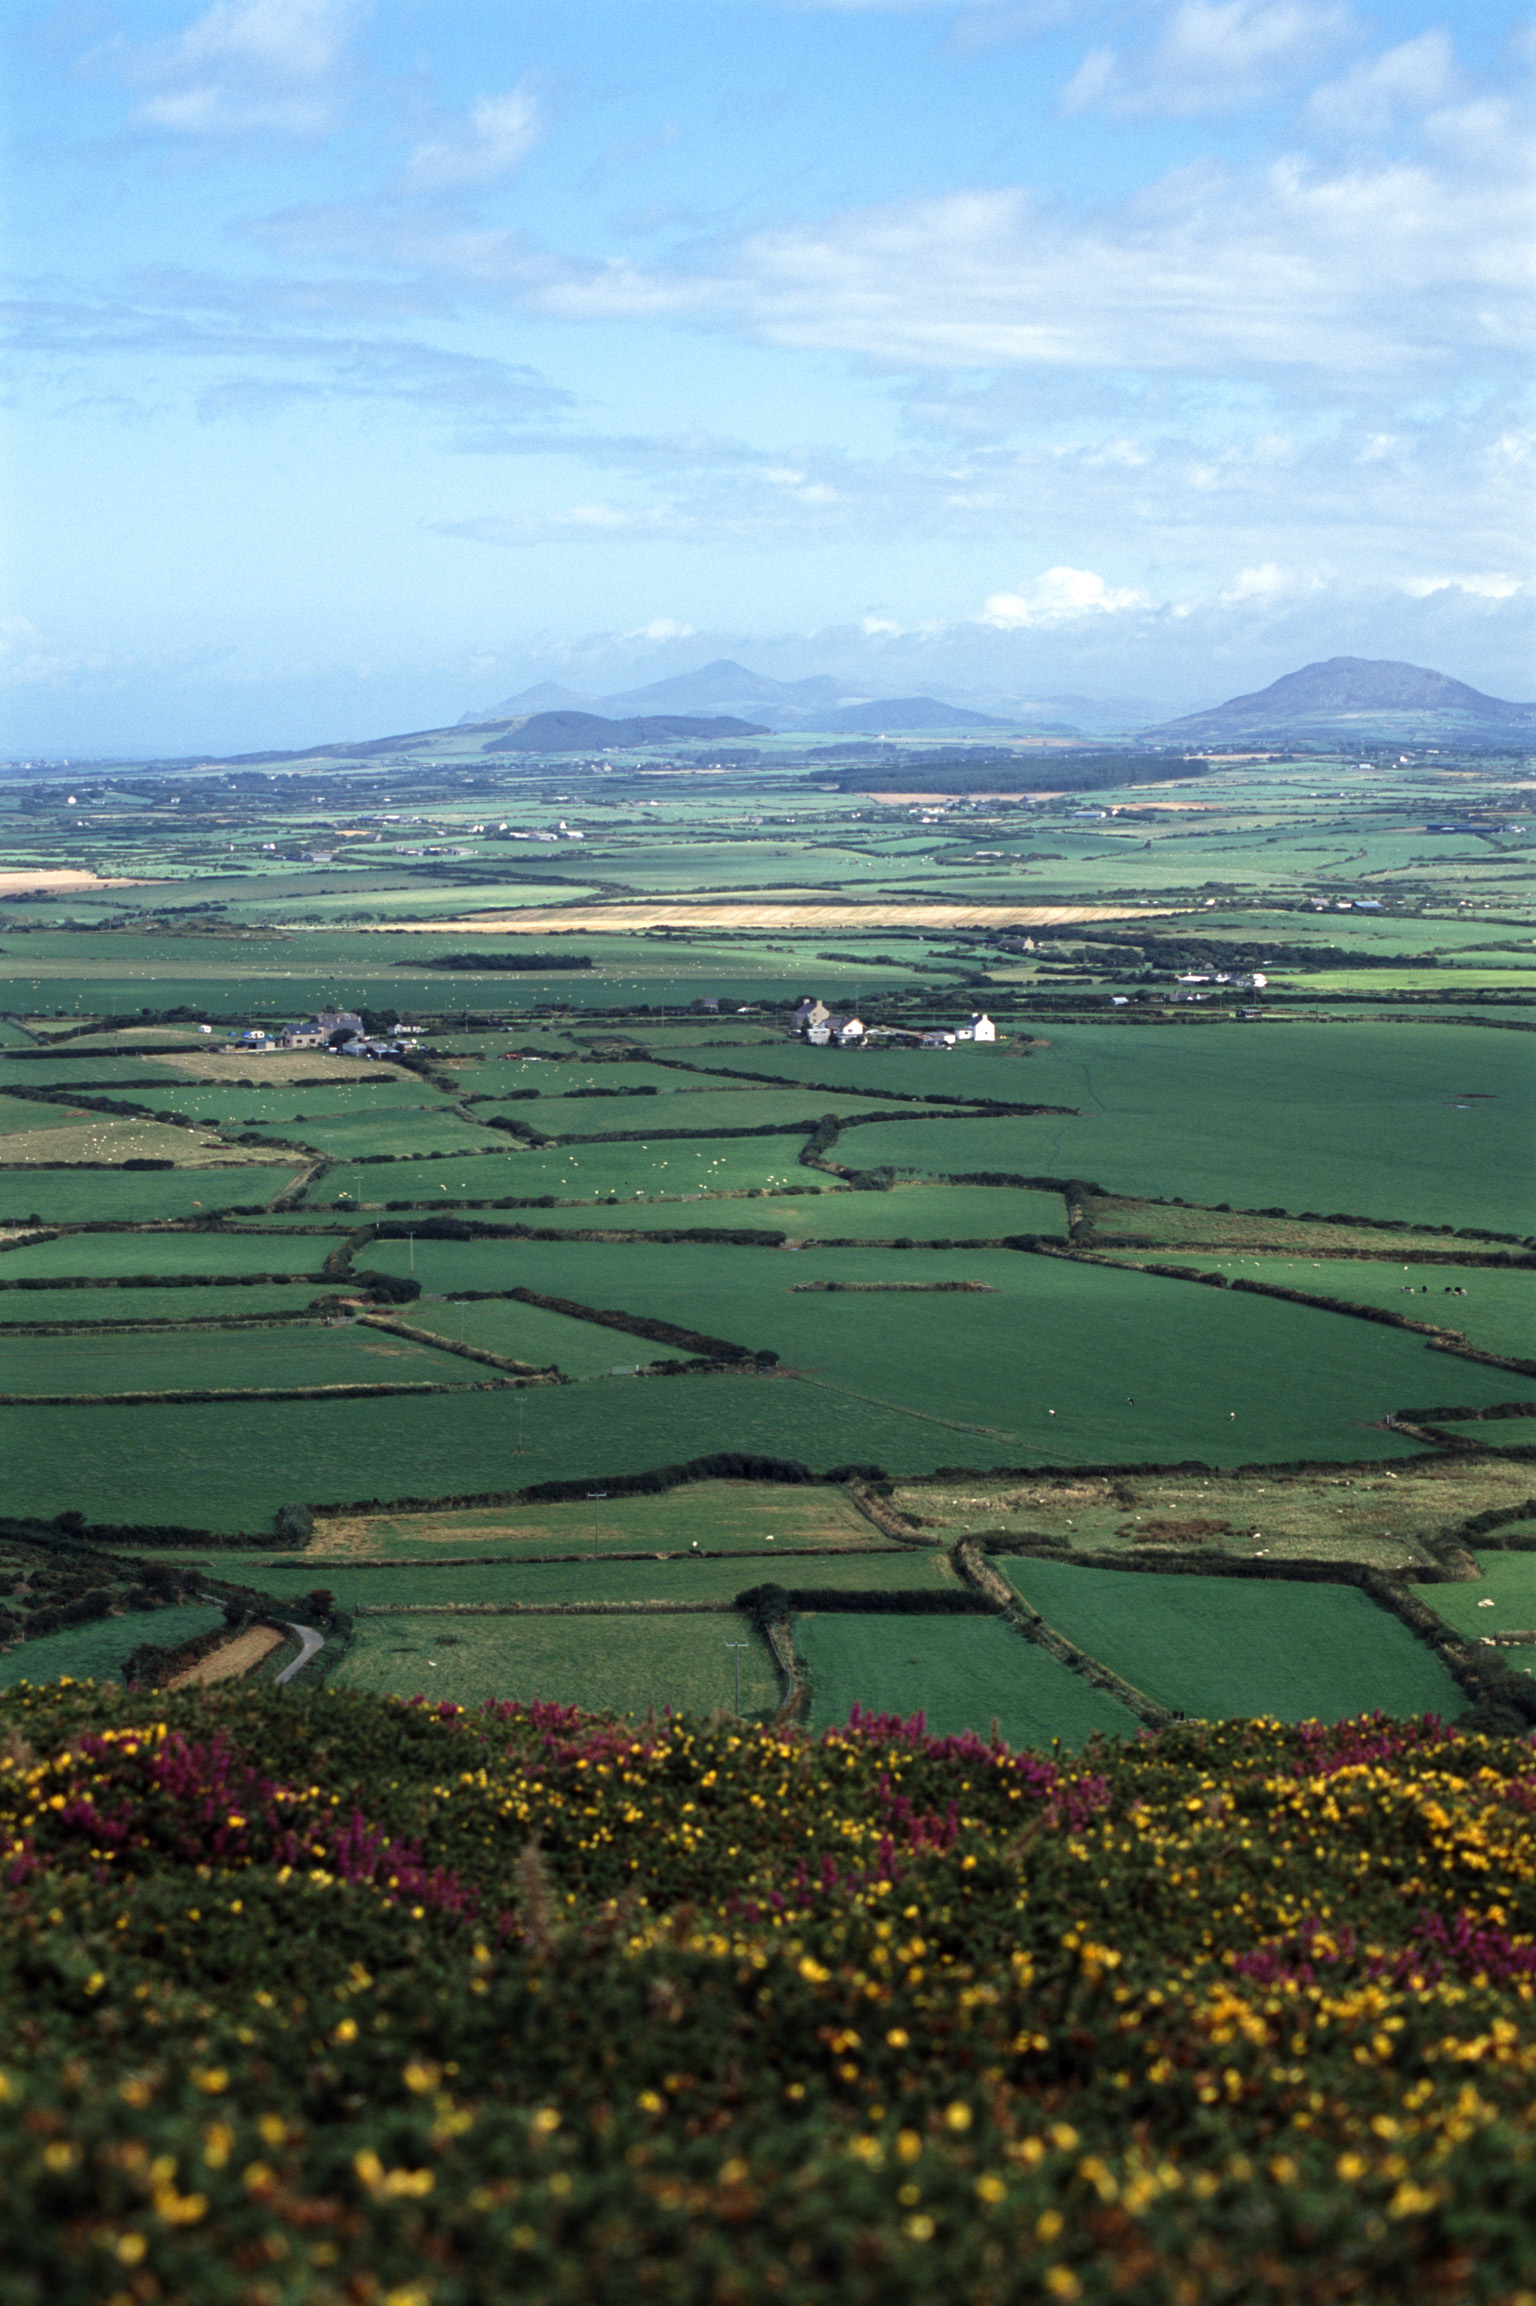 Scenic landscape with a patchwork of lush green corn fields and pasture on the Llyn Peninsula in Wales with distant mountain ranges under a cloudy blue sky